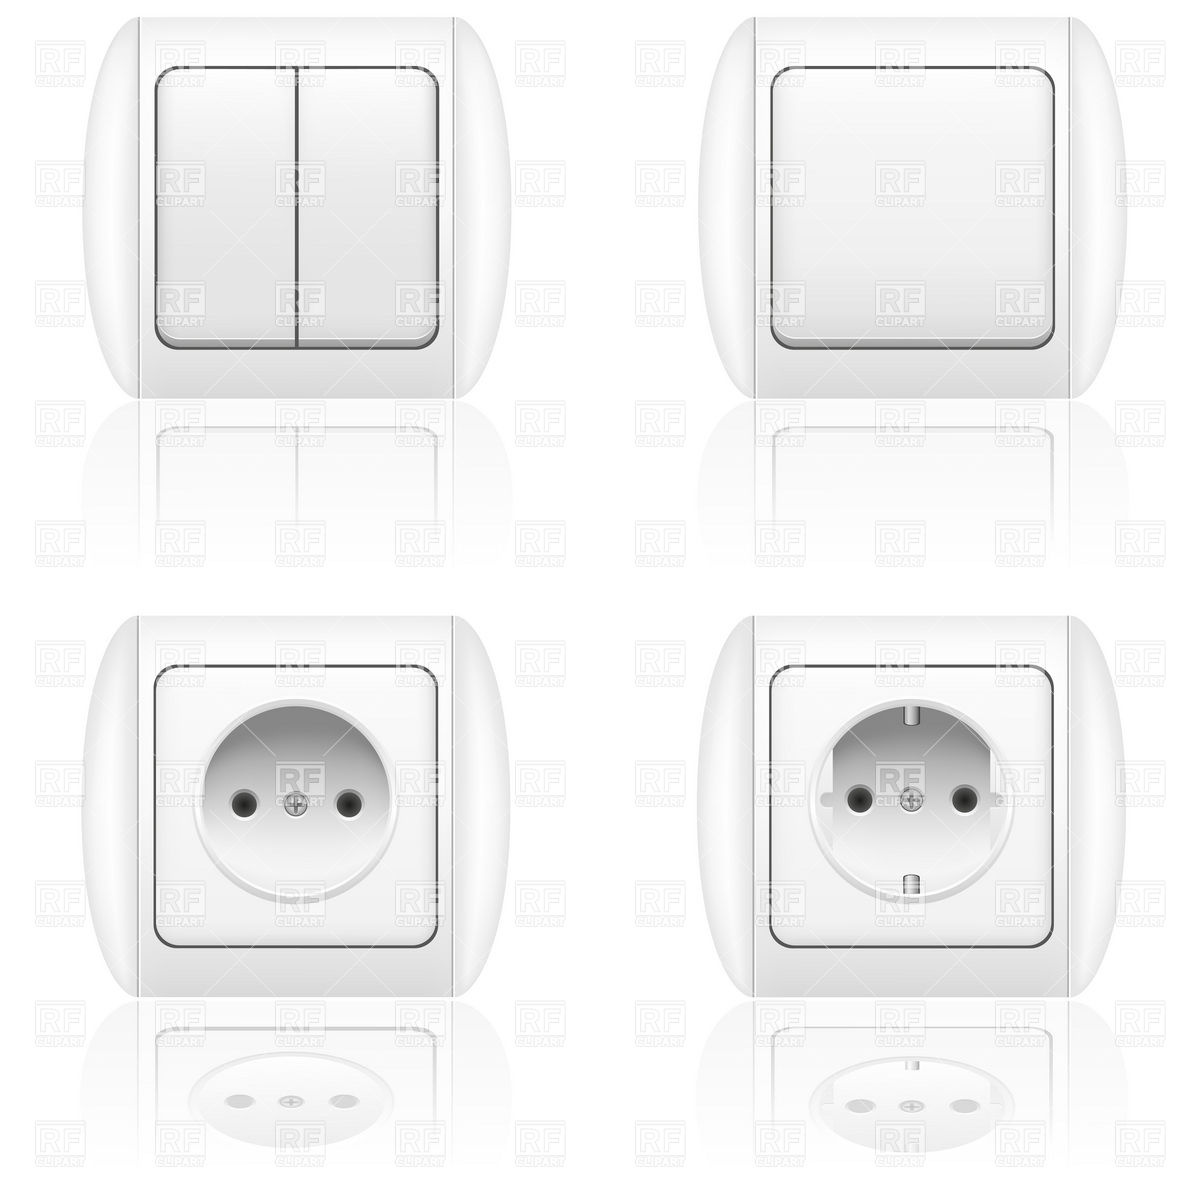 1200x1200 Electric Socket And Switch Vector Image Vector Artwork Of